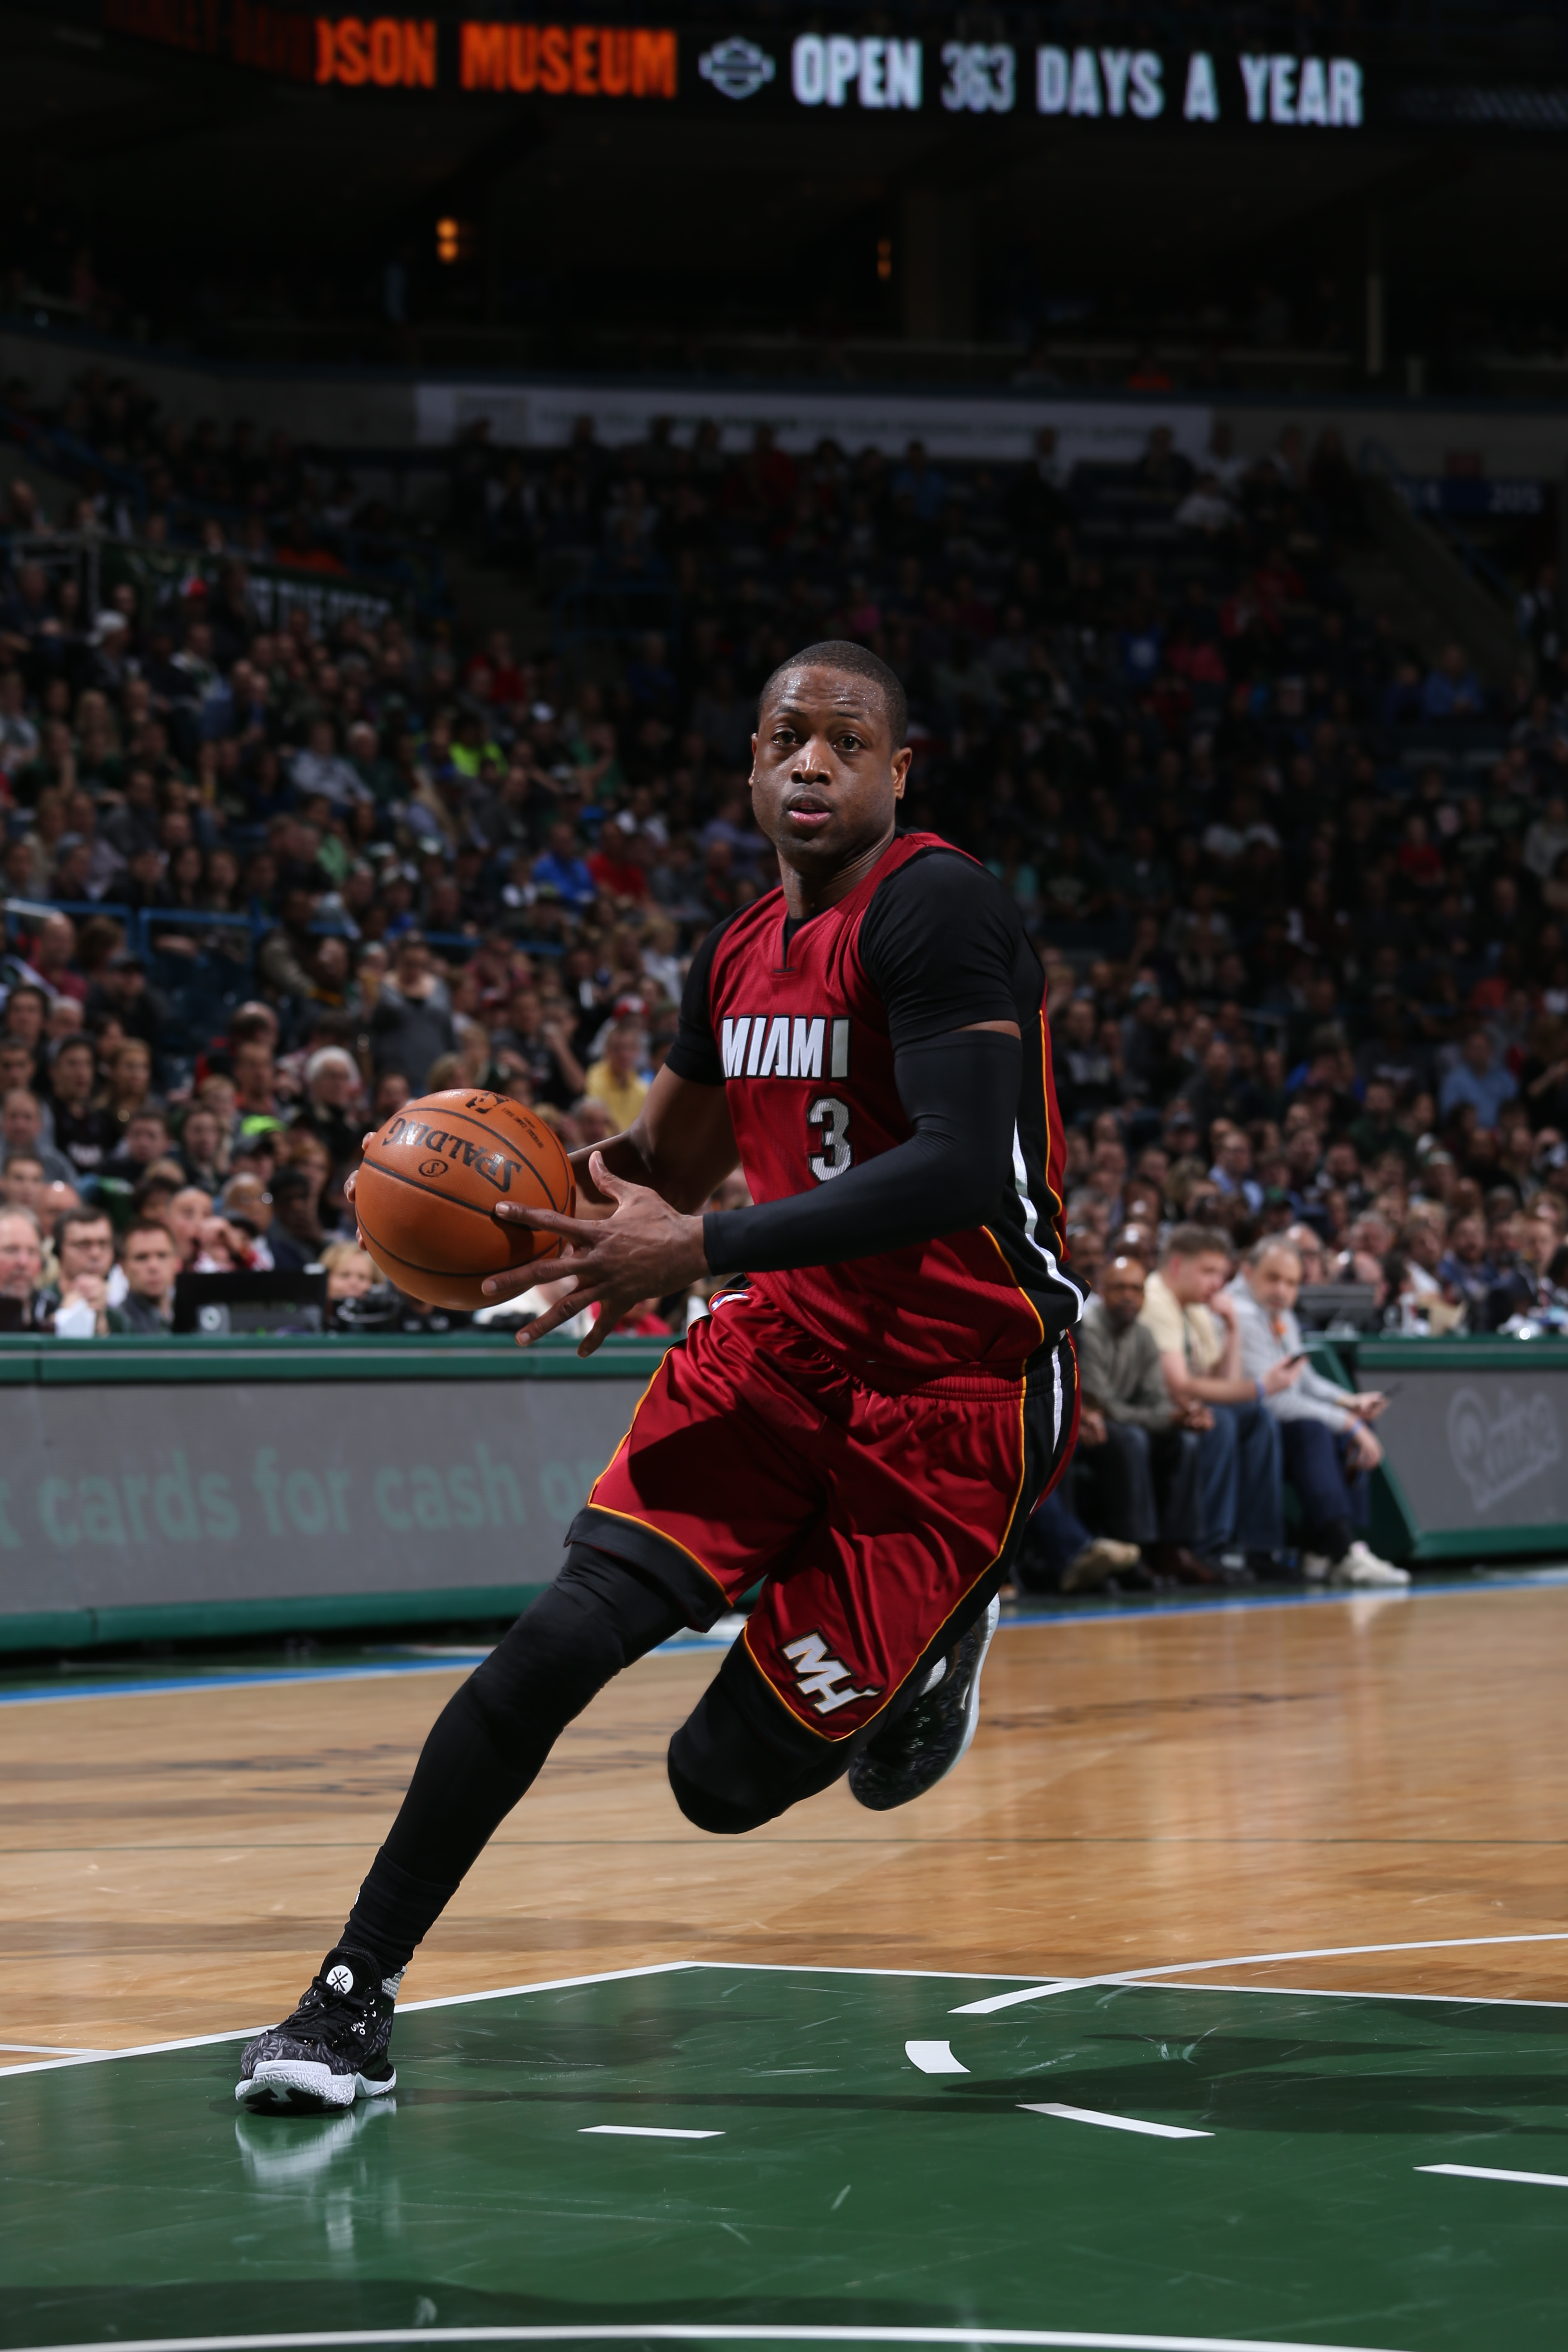 MILWAUKEE, WI - JANUARY 29:  Dwyane Wade #3 of the Miami Heat drives to the basket against the Milwaukee Bucks on January 29, 2016 at the BMO Harris Bradley Center in Milwaukee, Wisconsin. (Photo by Gary Dineen/NBAE via Getty Images)